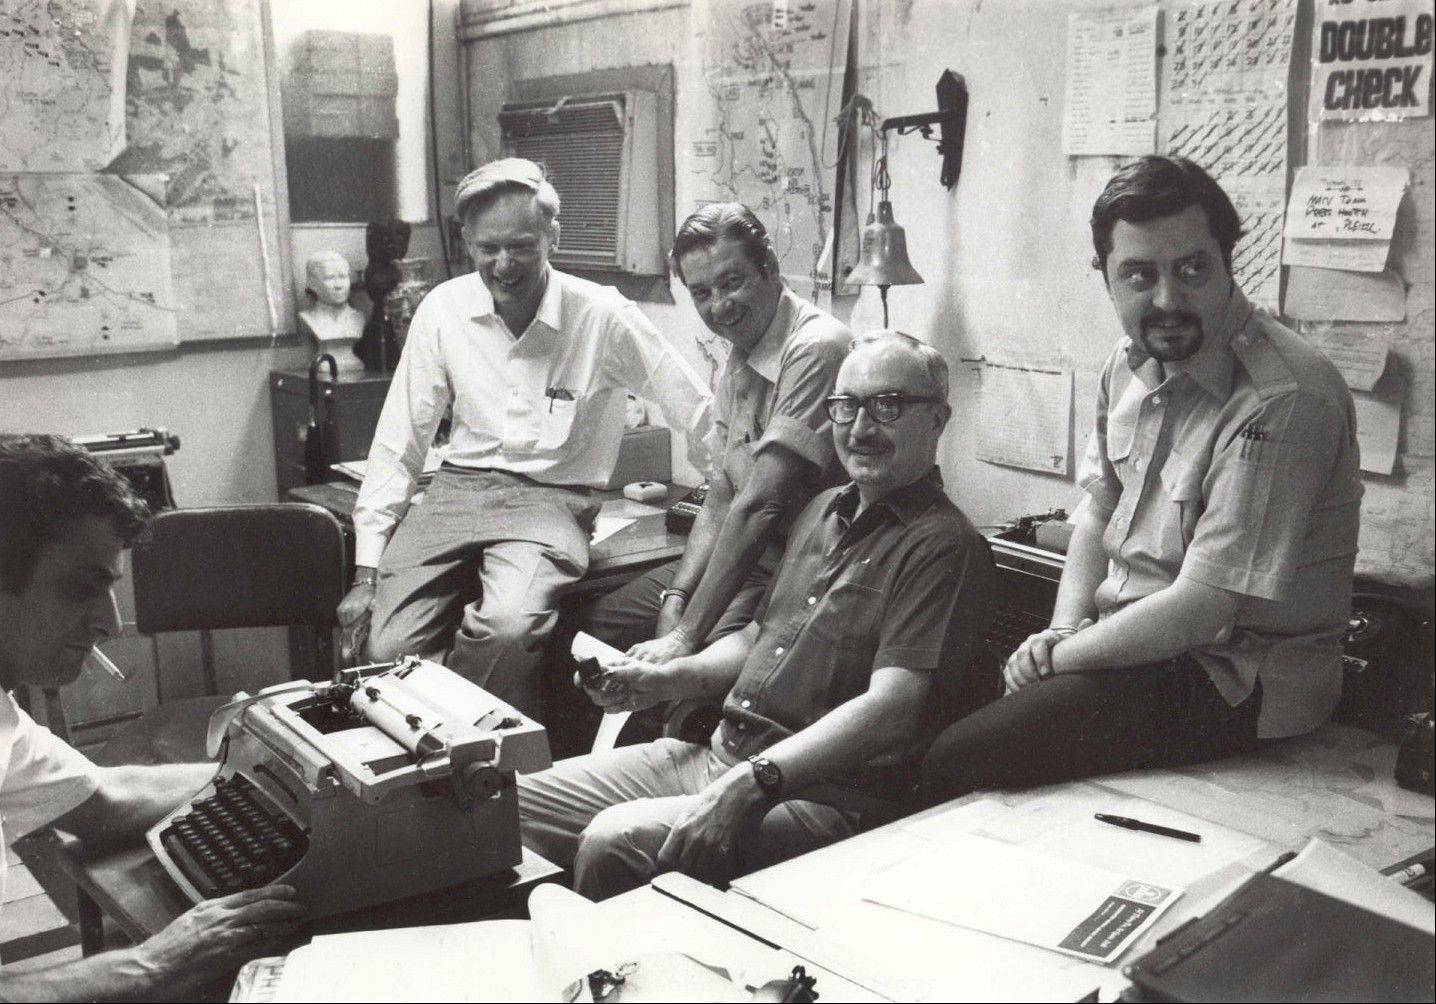 Once-and-future bureau cheifs at The Associated Press' Saigon bureau, from left, George Esper (1973-75), Malcolm Browne (1961-64), George McArthur (1968-69), Edwin Q. White (1965-67), and Richard Pyle (1970-73). White, a Saigon bureau chief for The Associated Press during the U.S. buildup in the Vietnam War, has died at age 90.